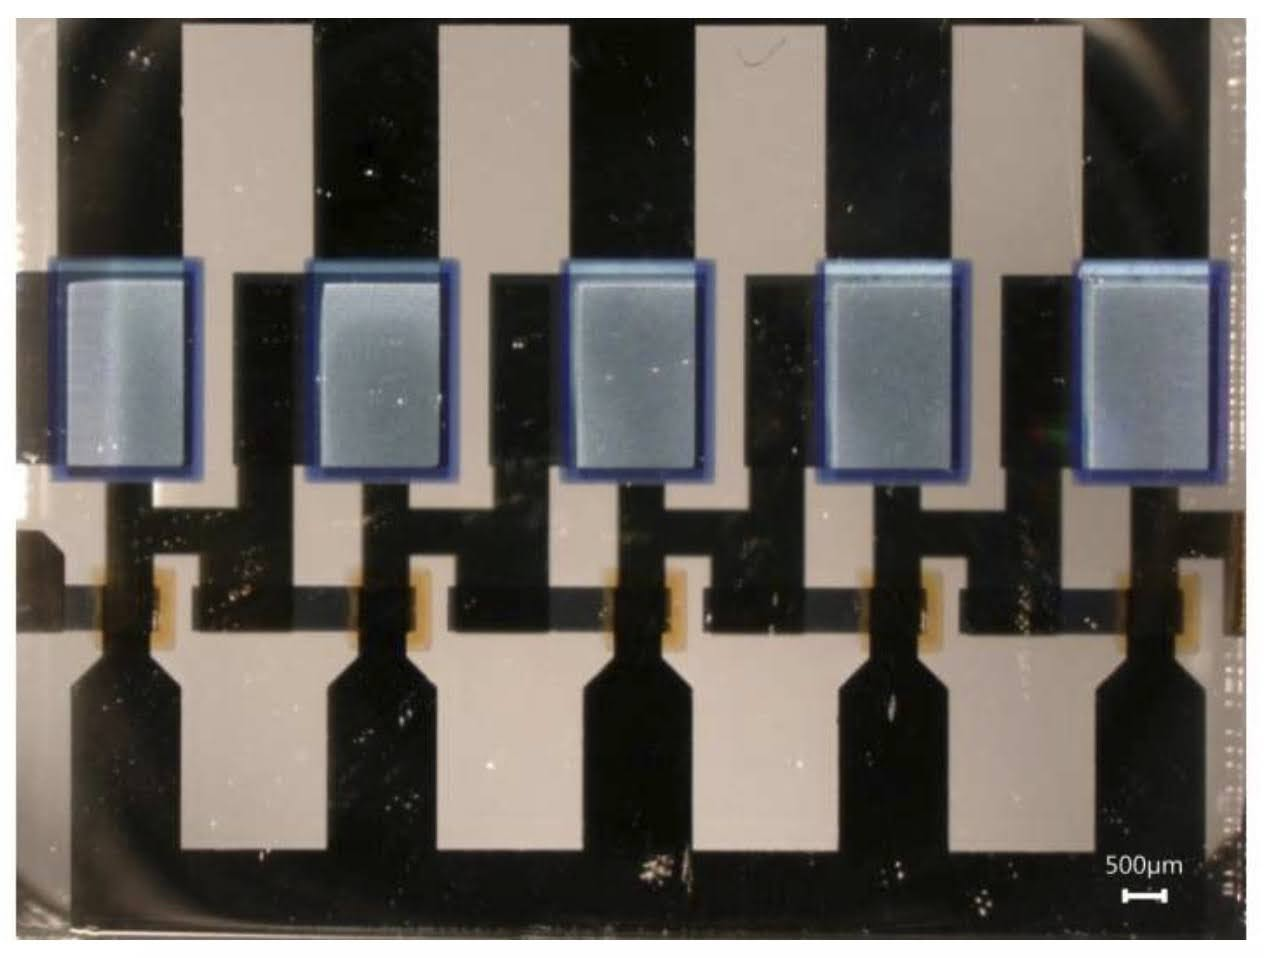 Researchers at the TU Dresden, Germany have implemented high-frequency essential building blocks with low power consumption using organic materials.